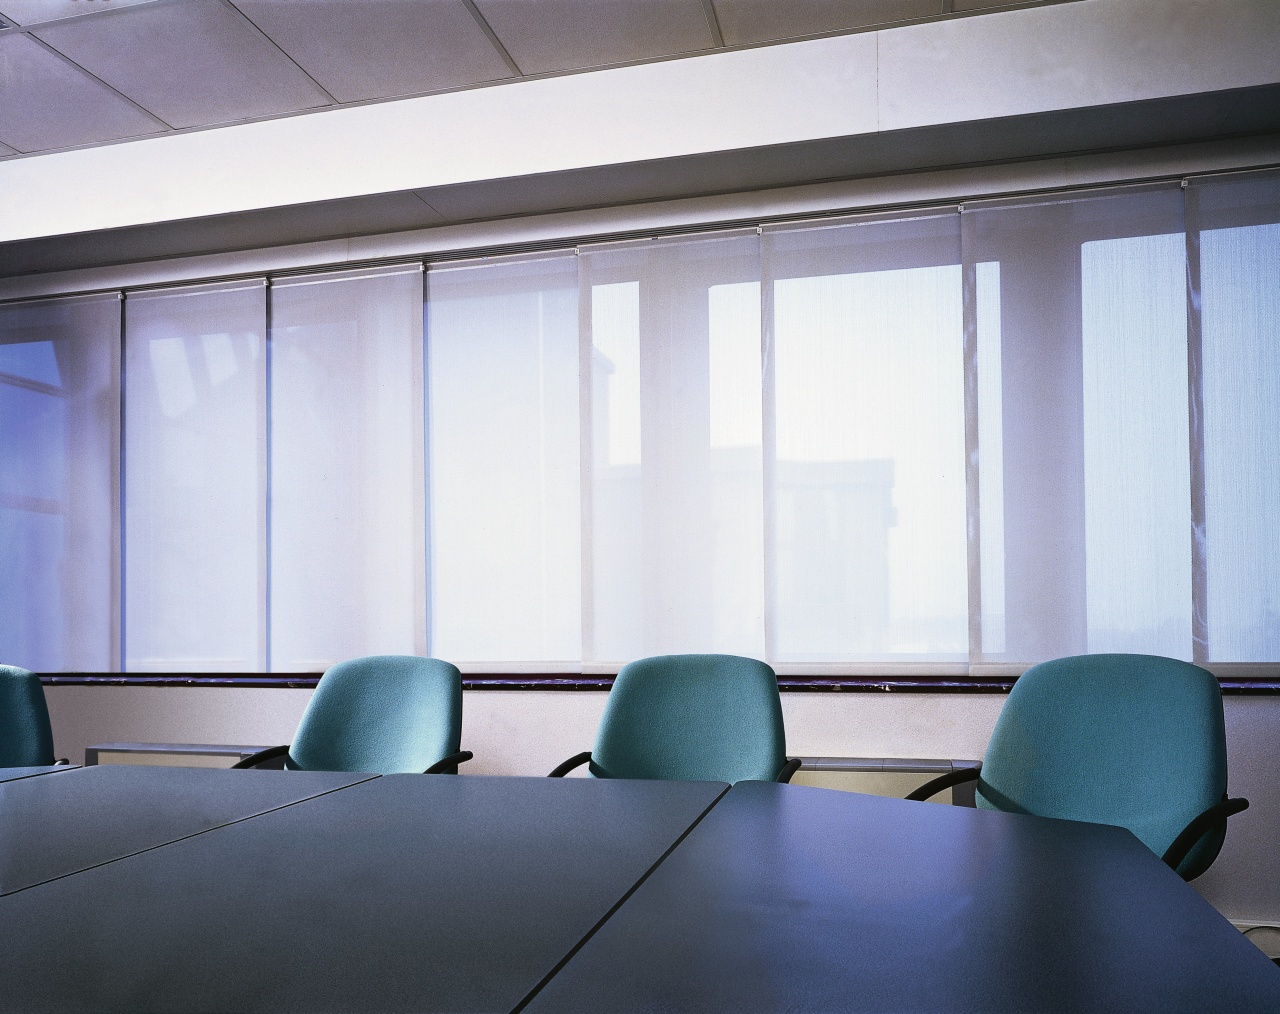 A view of some window shades. architecture, ceiling, daylighting, glass, interior design, office, shade, wall, window, window blind, window covering, window treatment, white